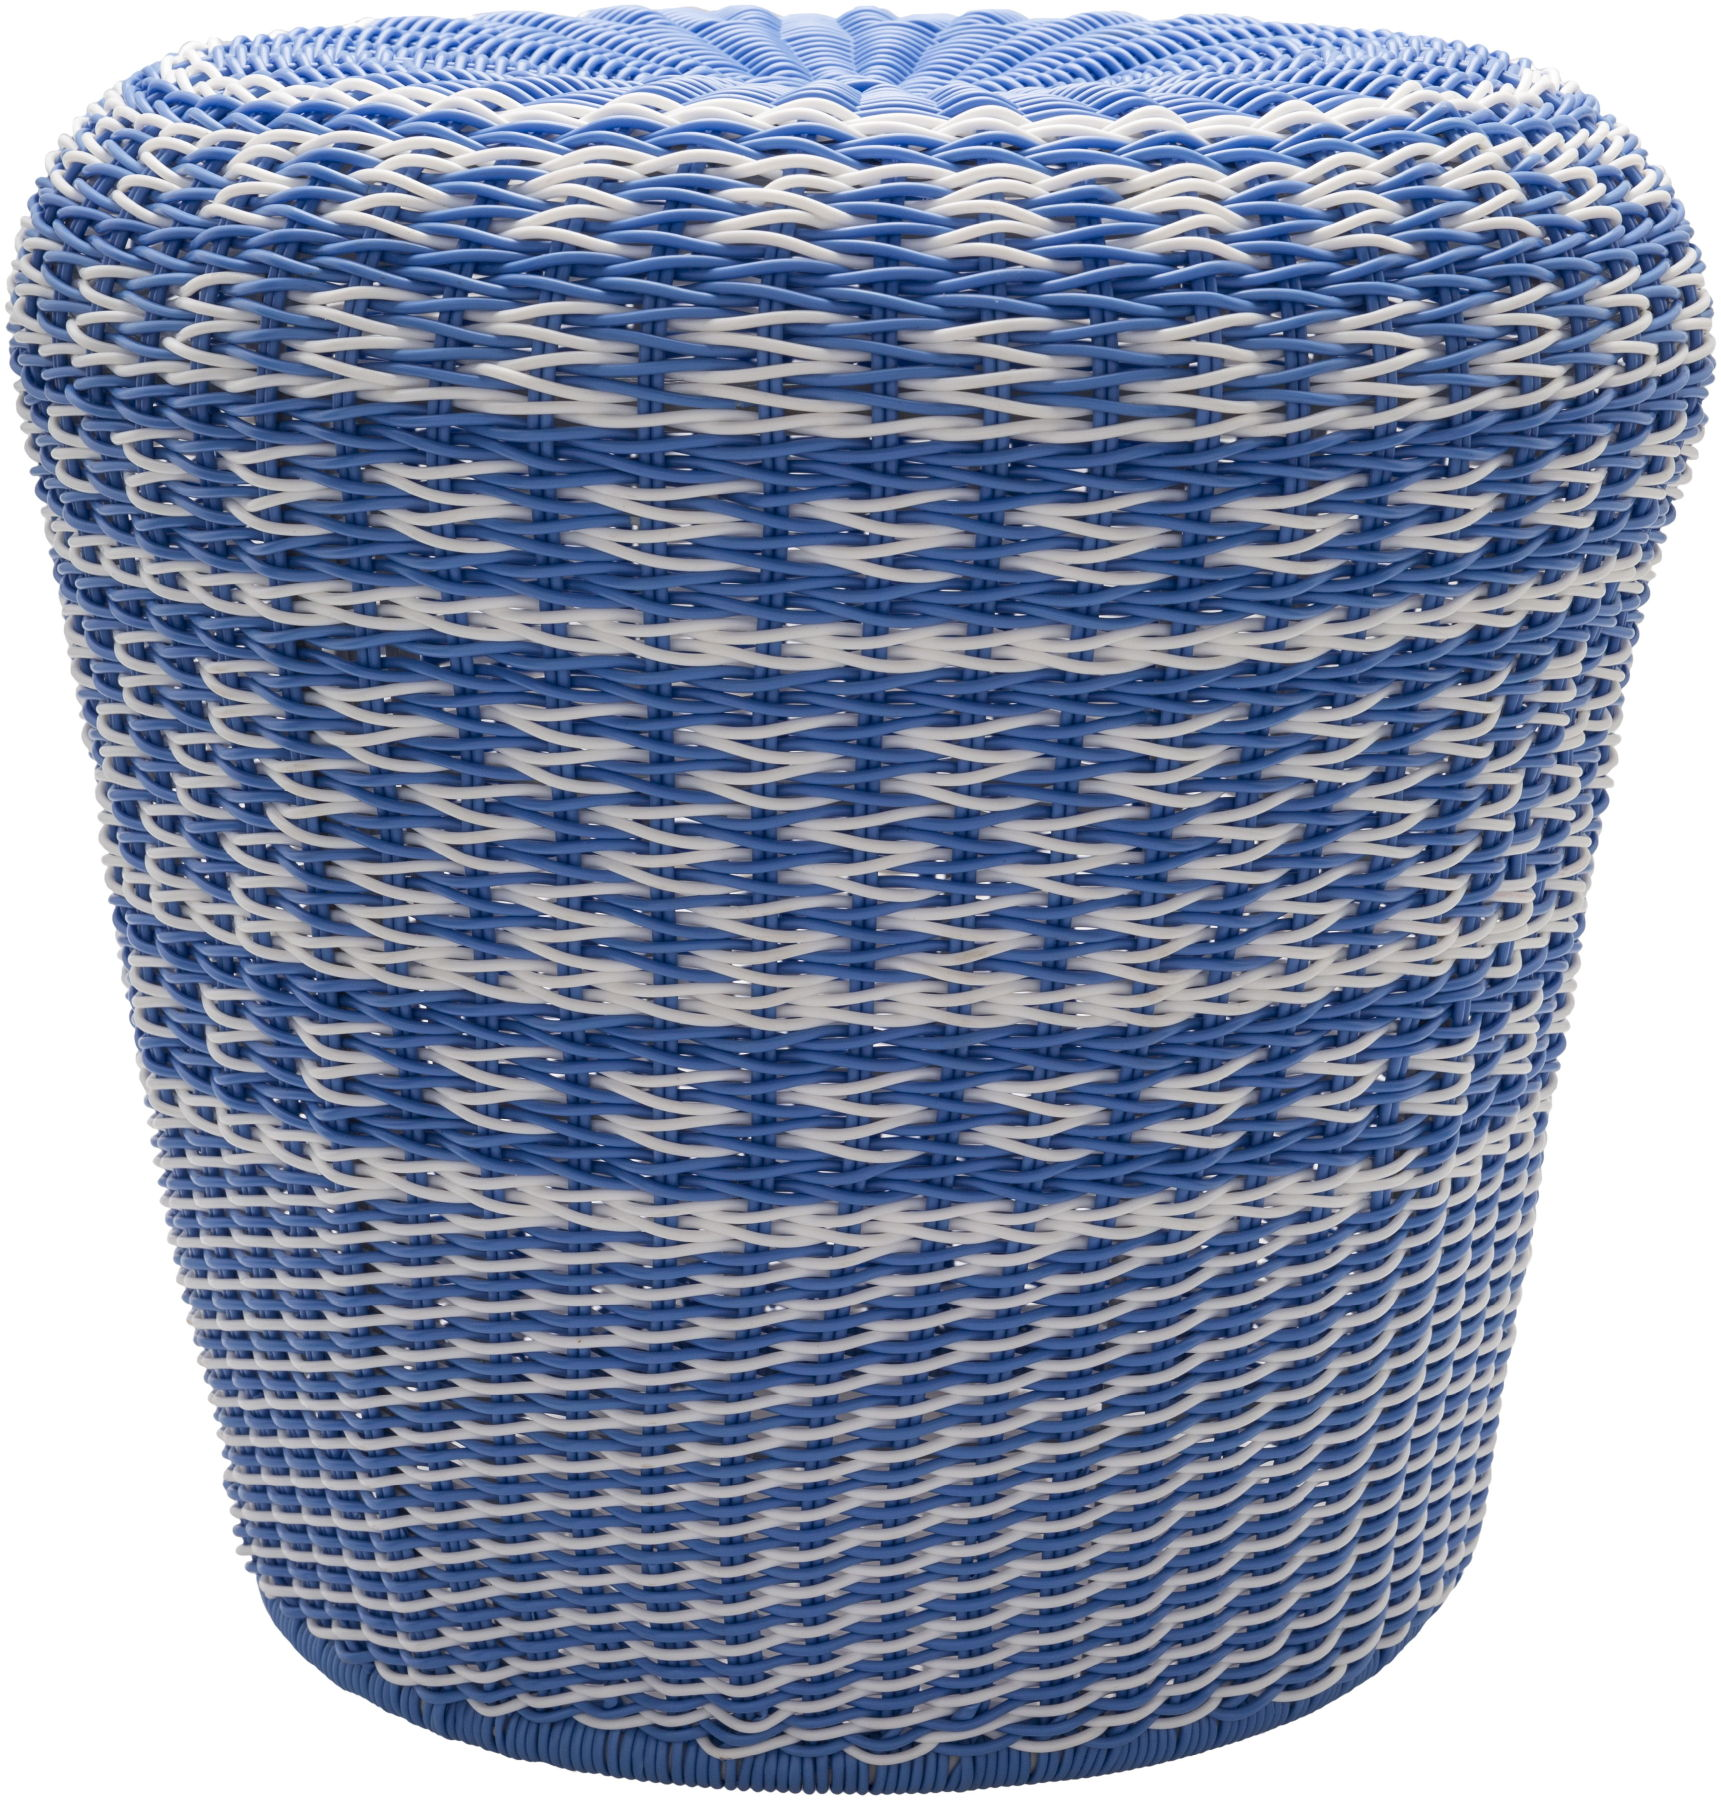 Miraculous Surya Parkdale Bright Blue White Polyethylene Ottoman Squirreltailoven Fun Painted Chair Ideas Images Squirreltailovenorg